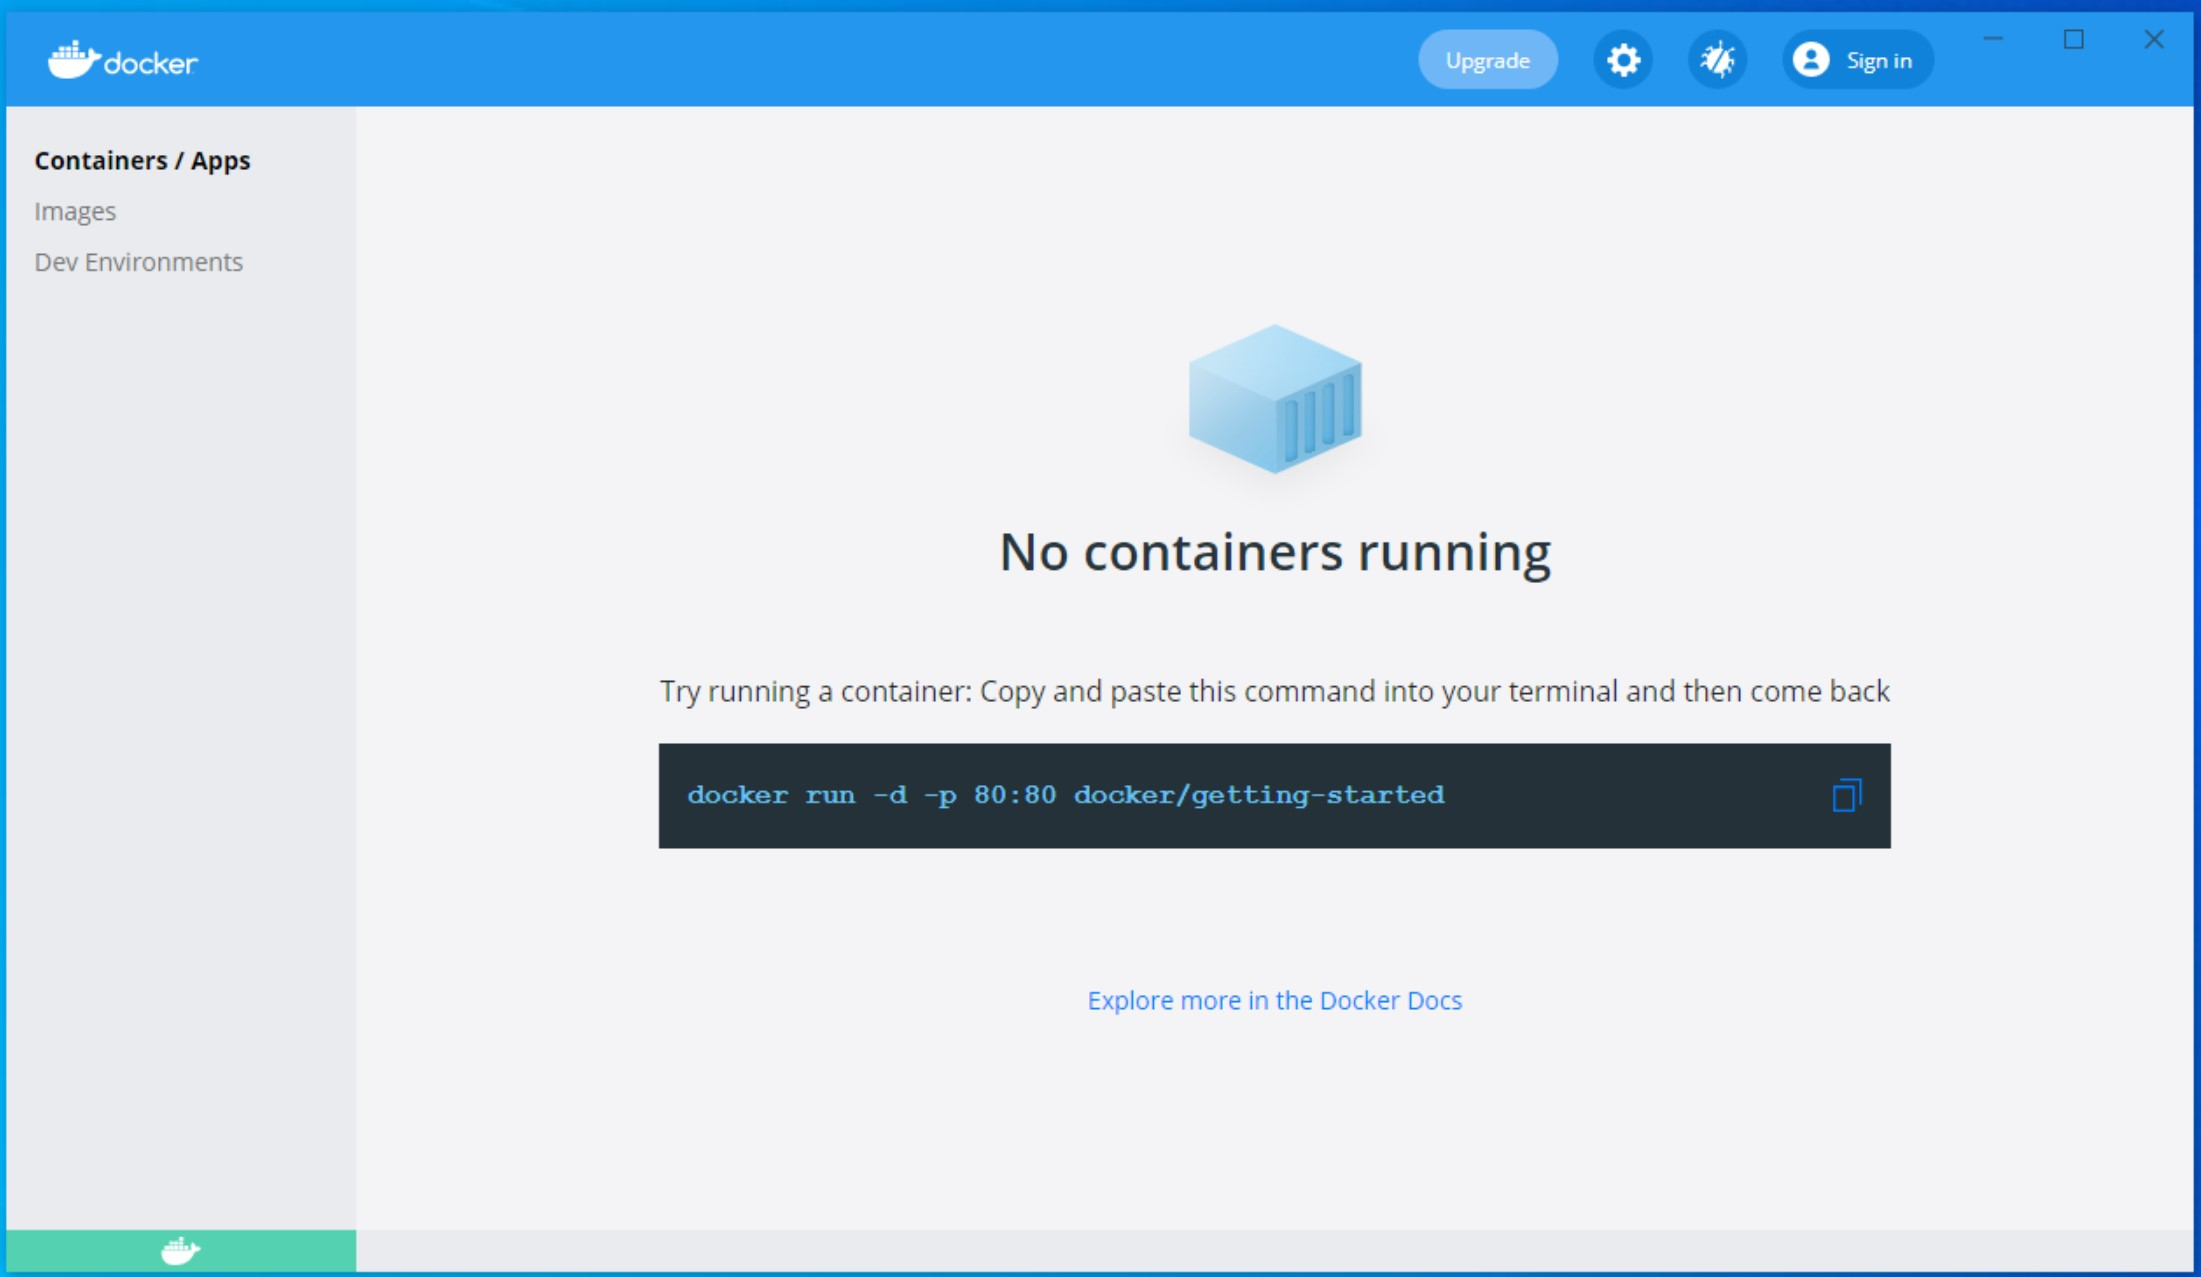 The Docker dashboard will open. If the logo in the bottom left is green it means Docker is running